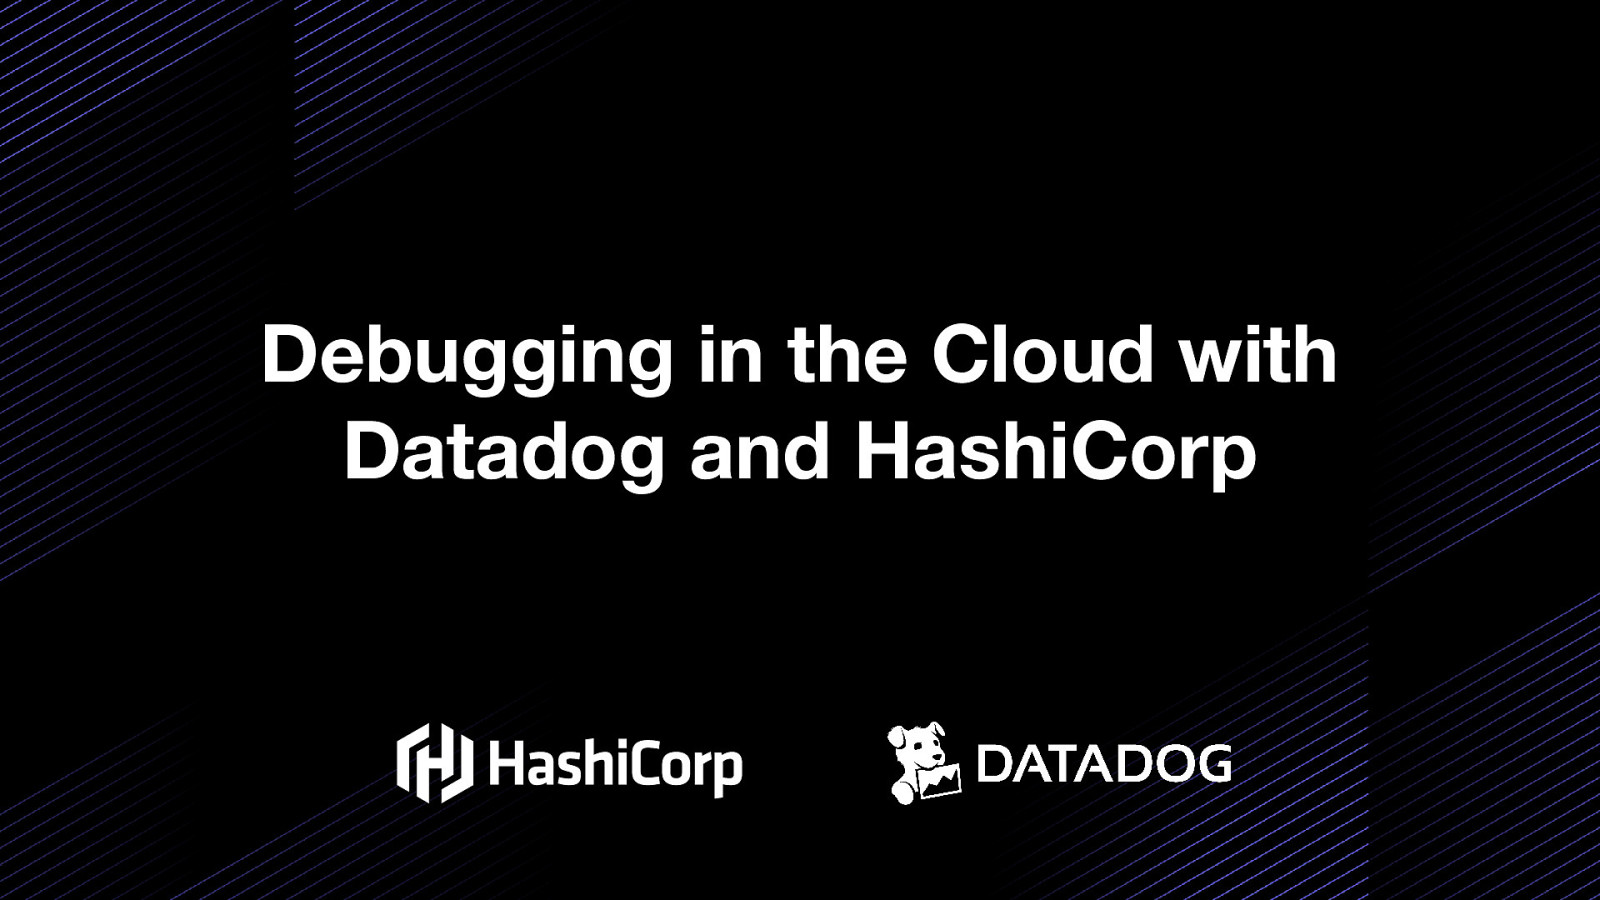 Debugging in the Cloud with Datadog and HashiCorp